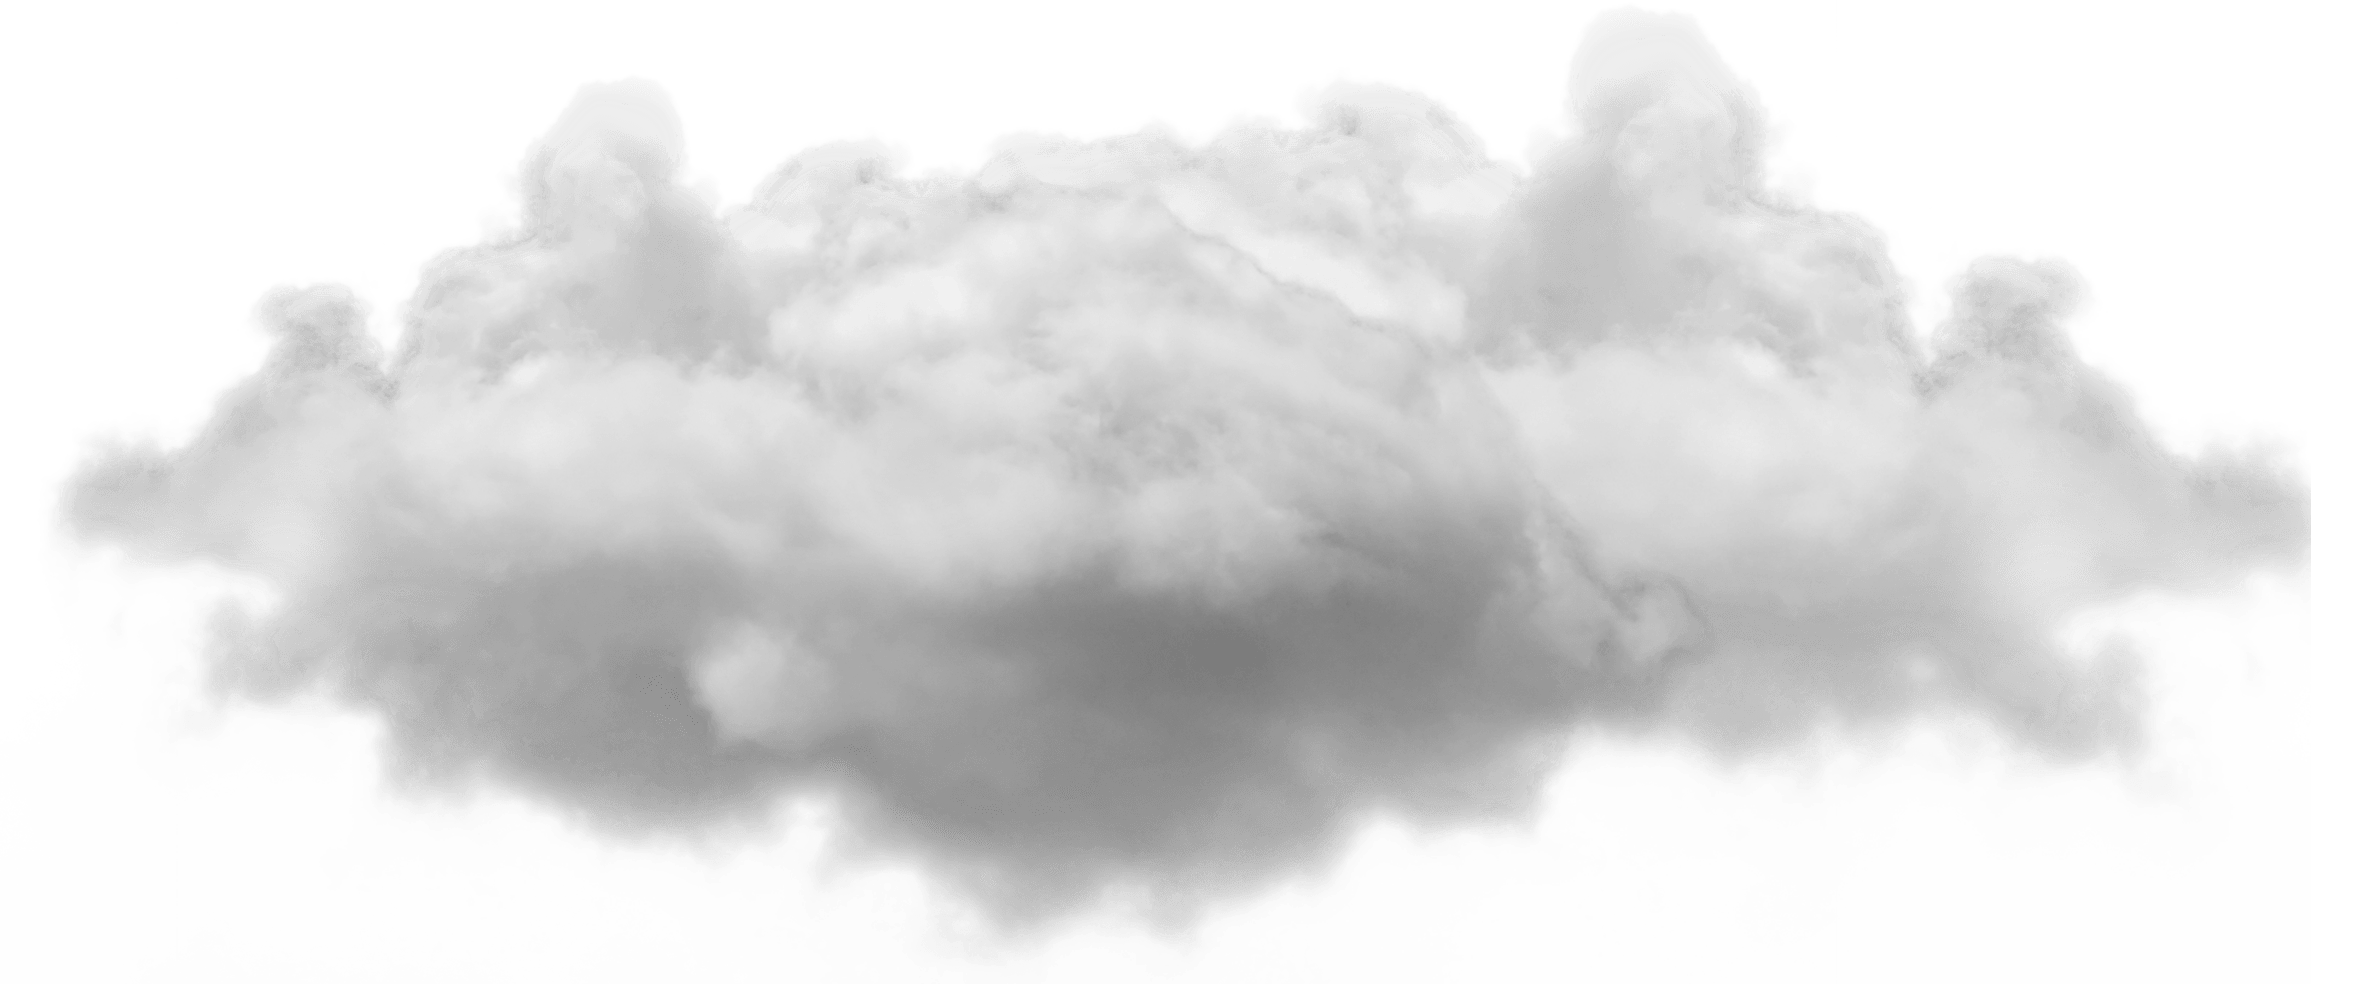 Small Single Cloud PNG Image Clouds, Png images, Sky